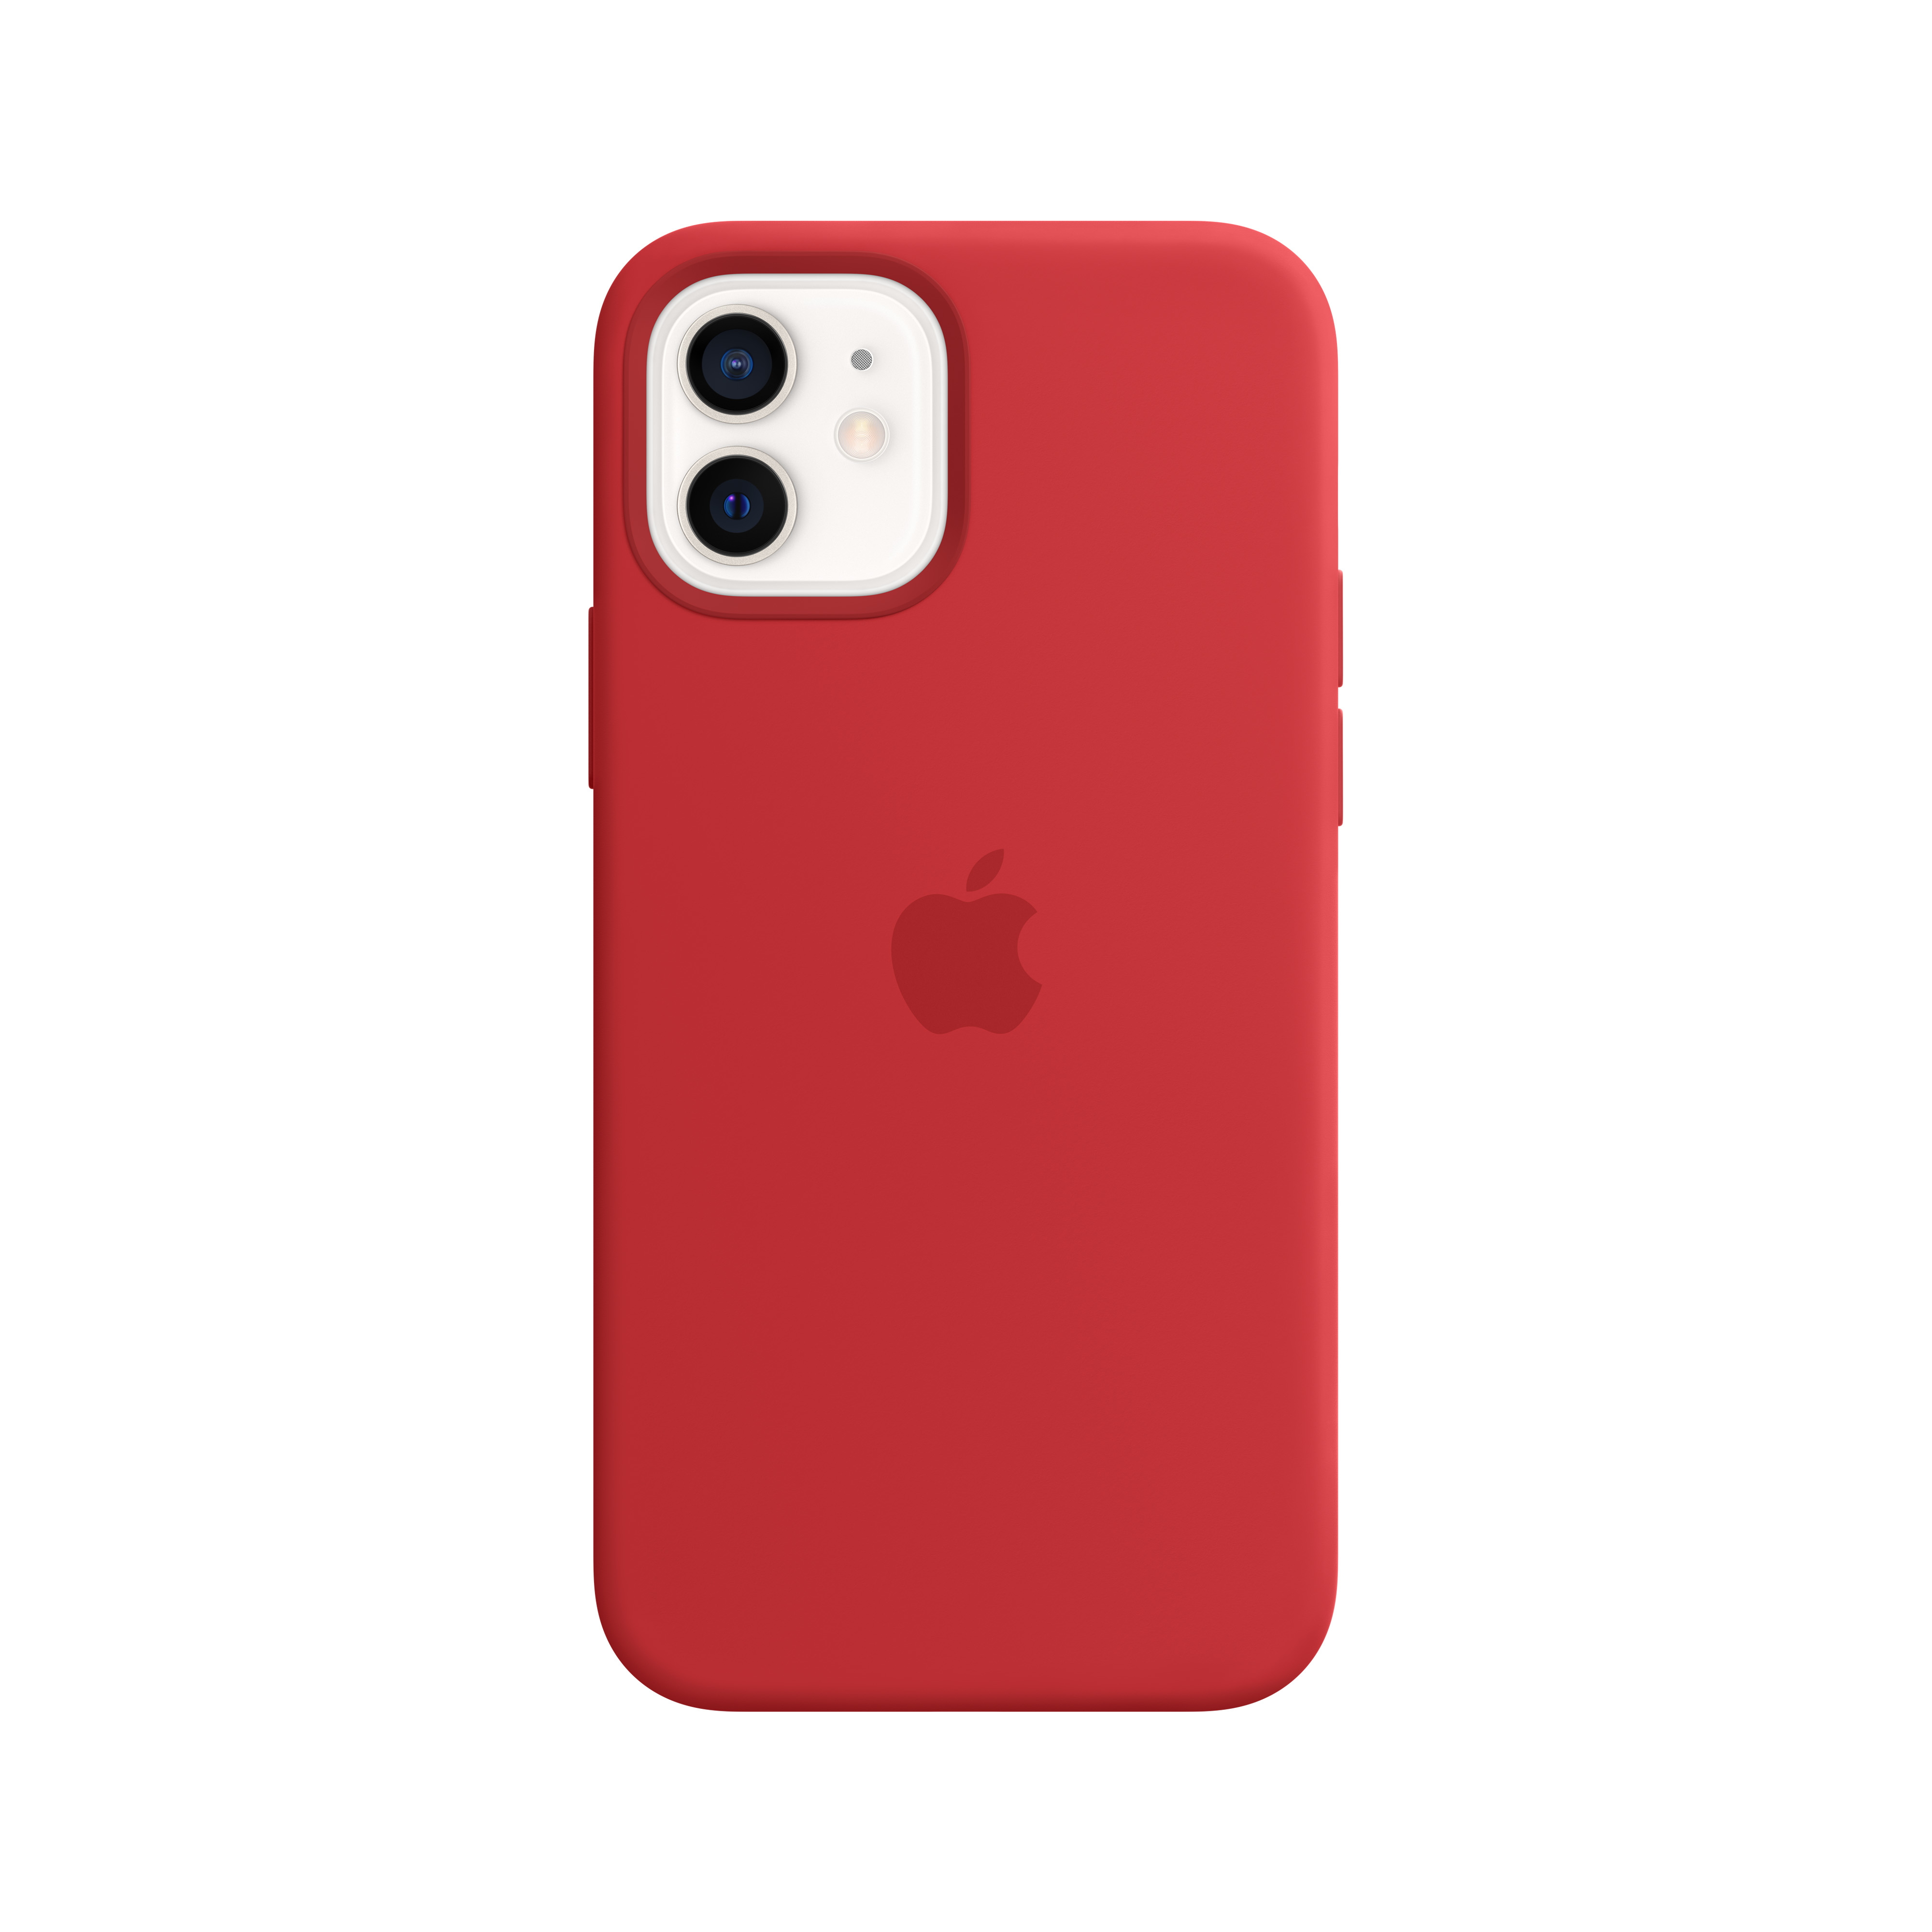 Apple - iPhone 12 | 12 Pro Silicone Case with MagSafe - (PRODUCT)RED Mhl63zm/a